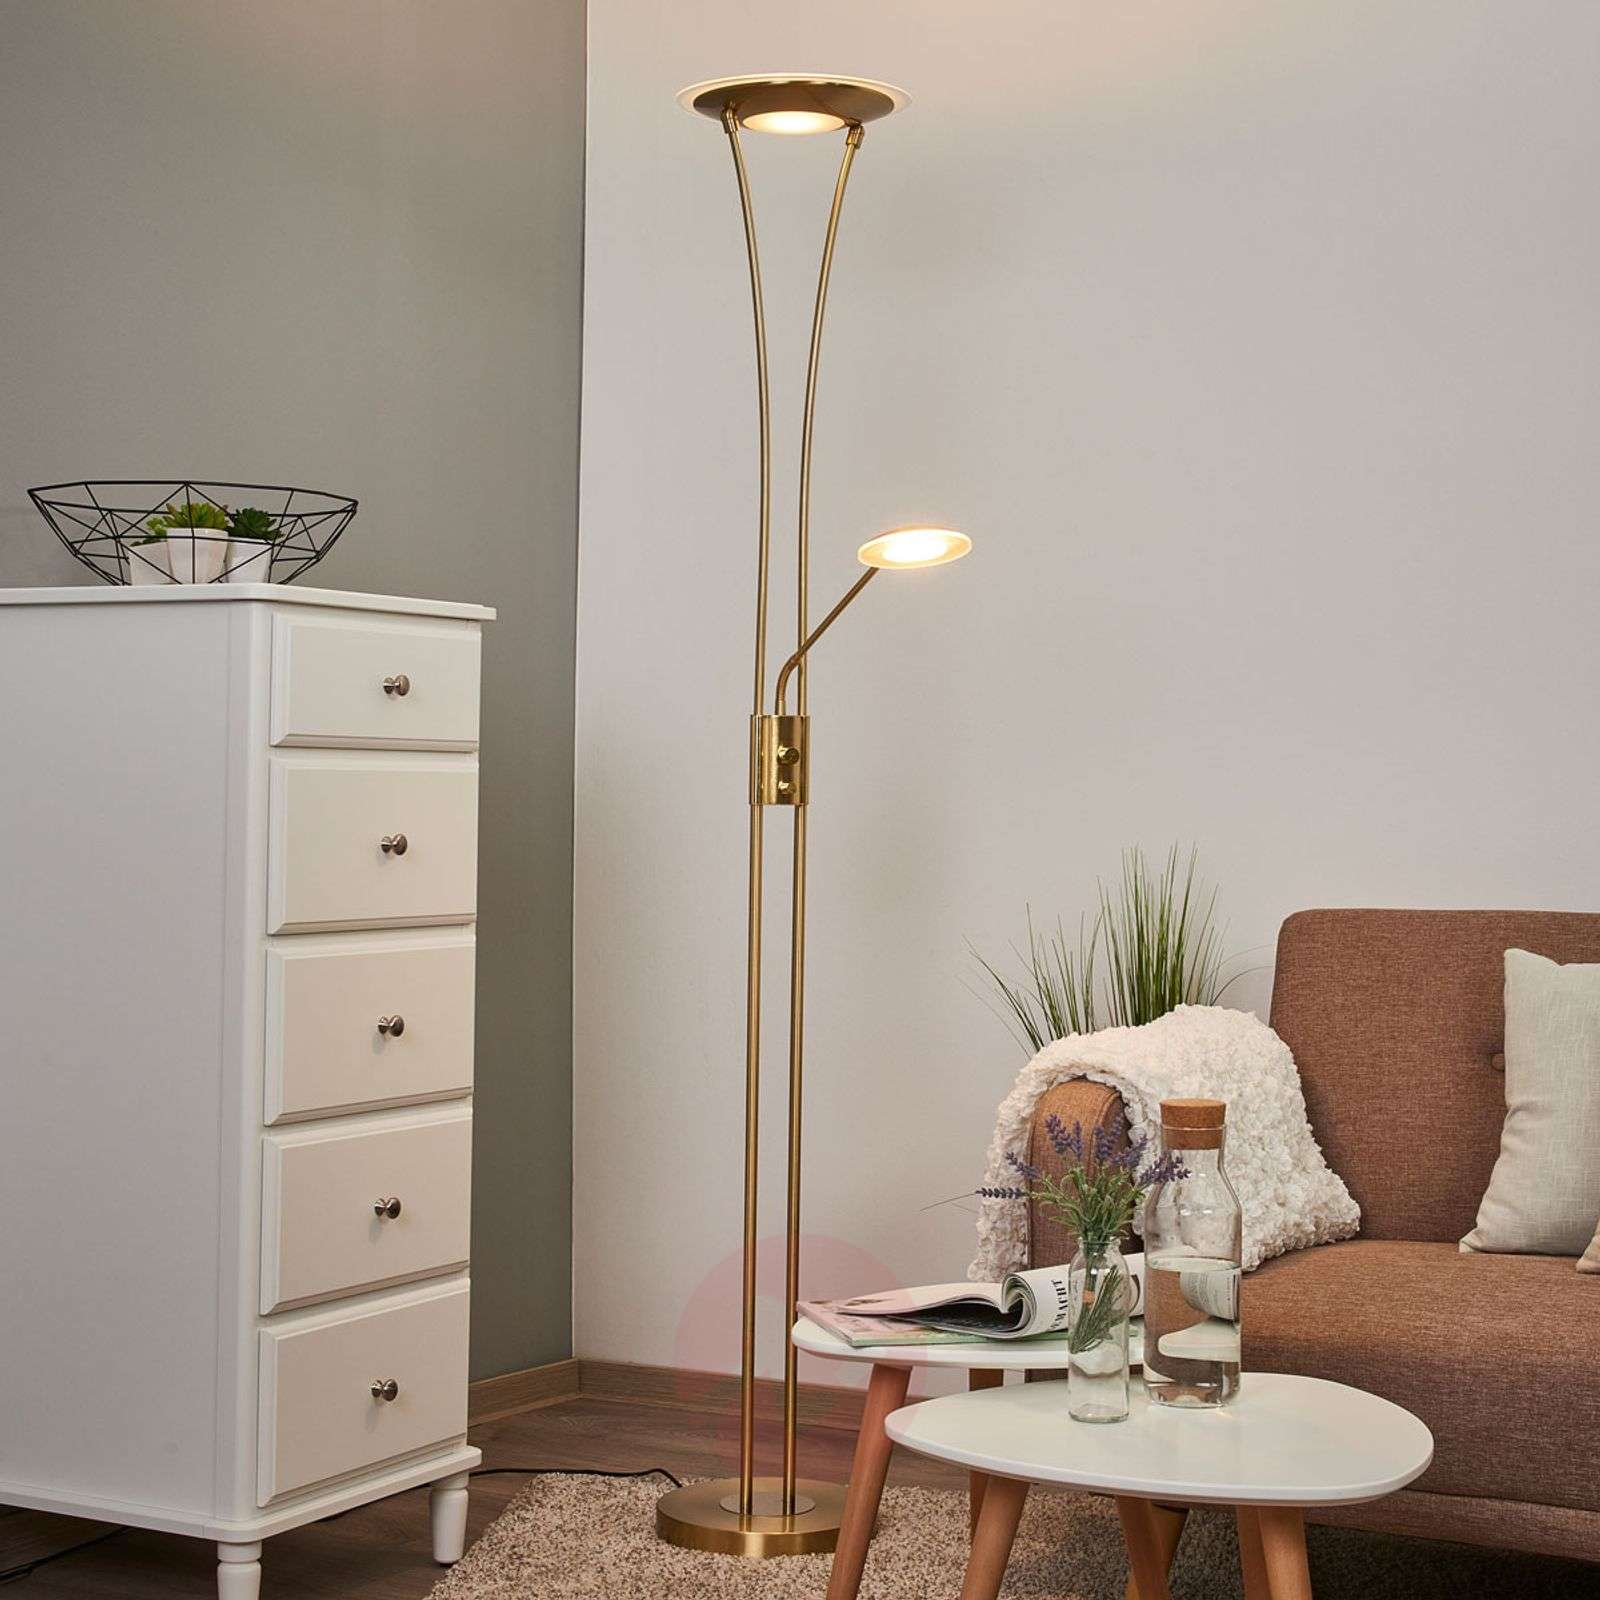 Floor Lamp And Reading Light This Year Now @house2homegoods.net